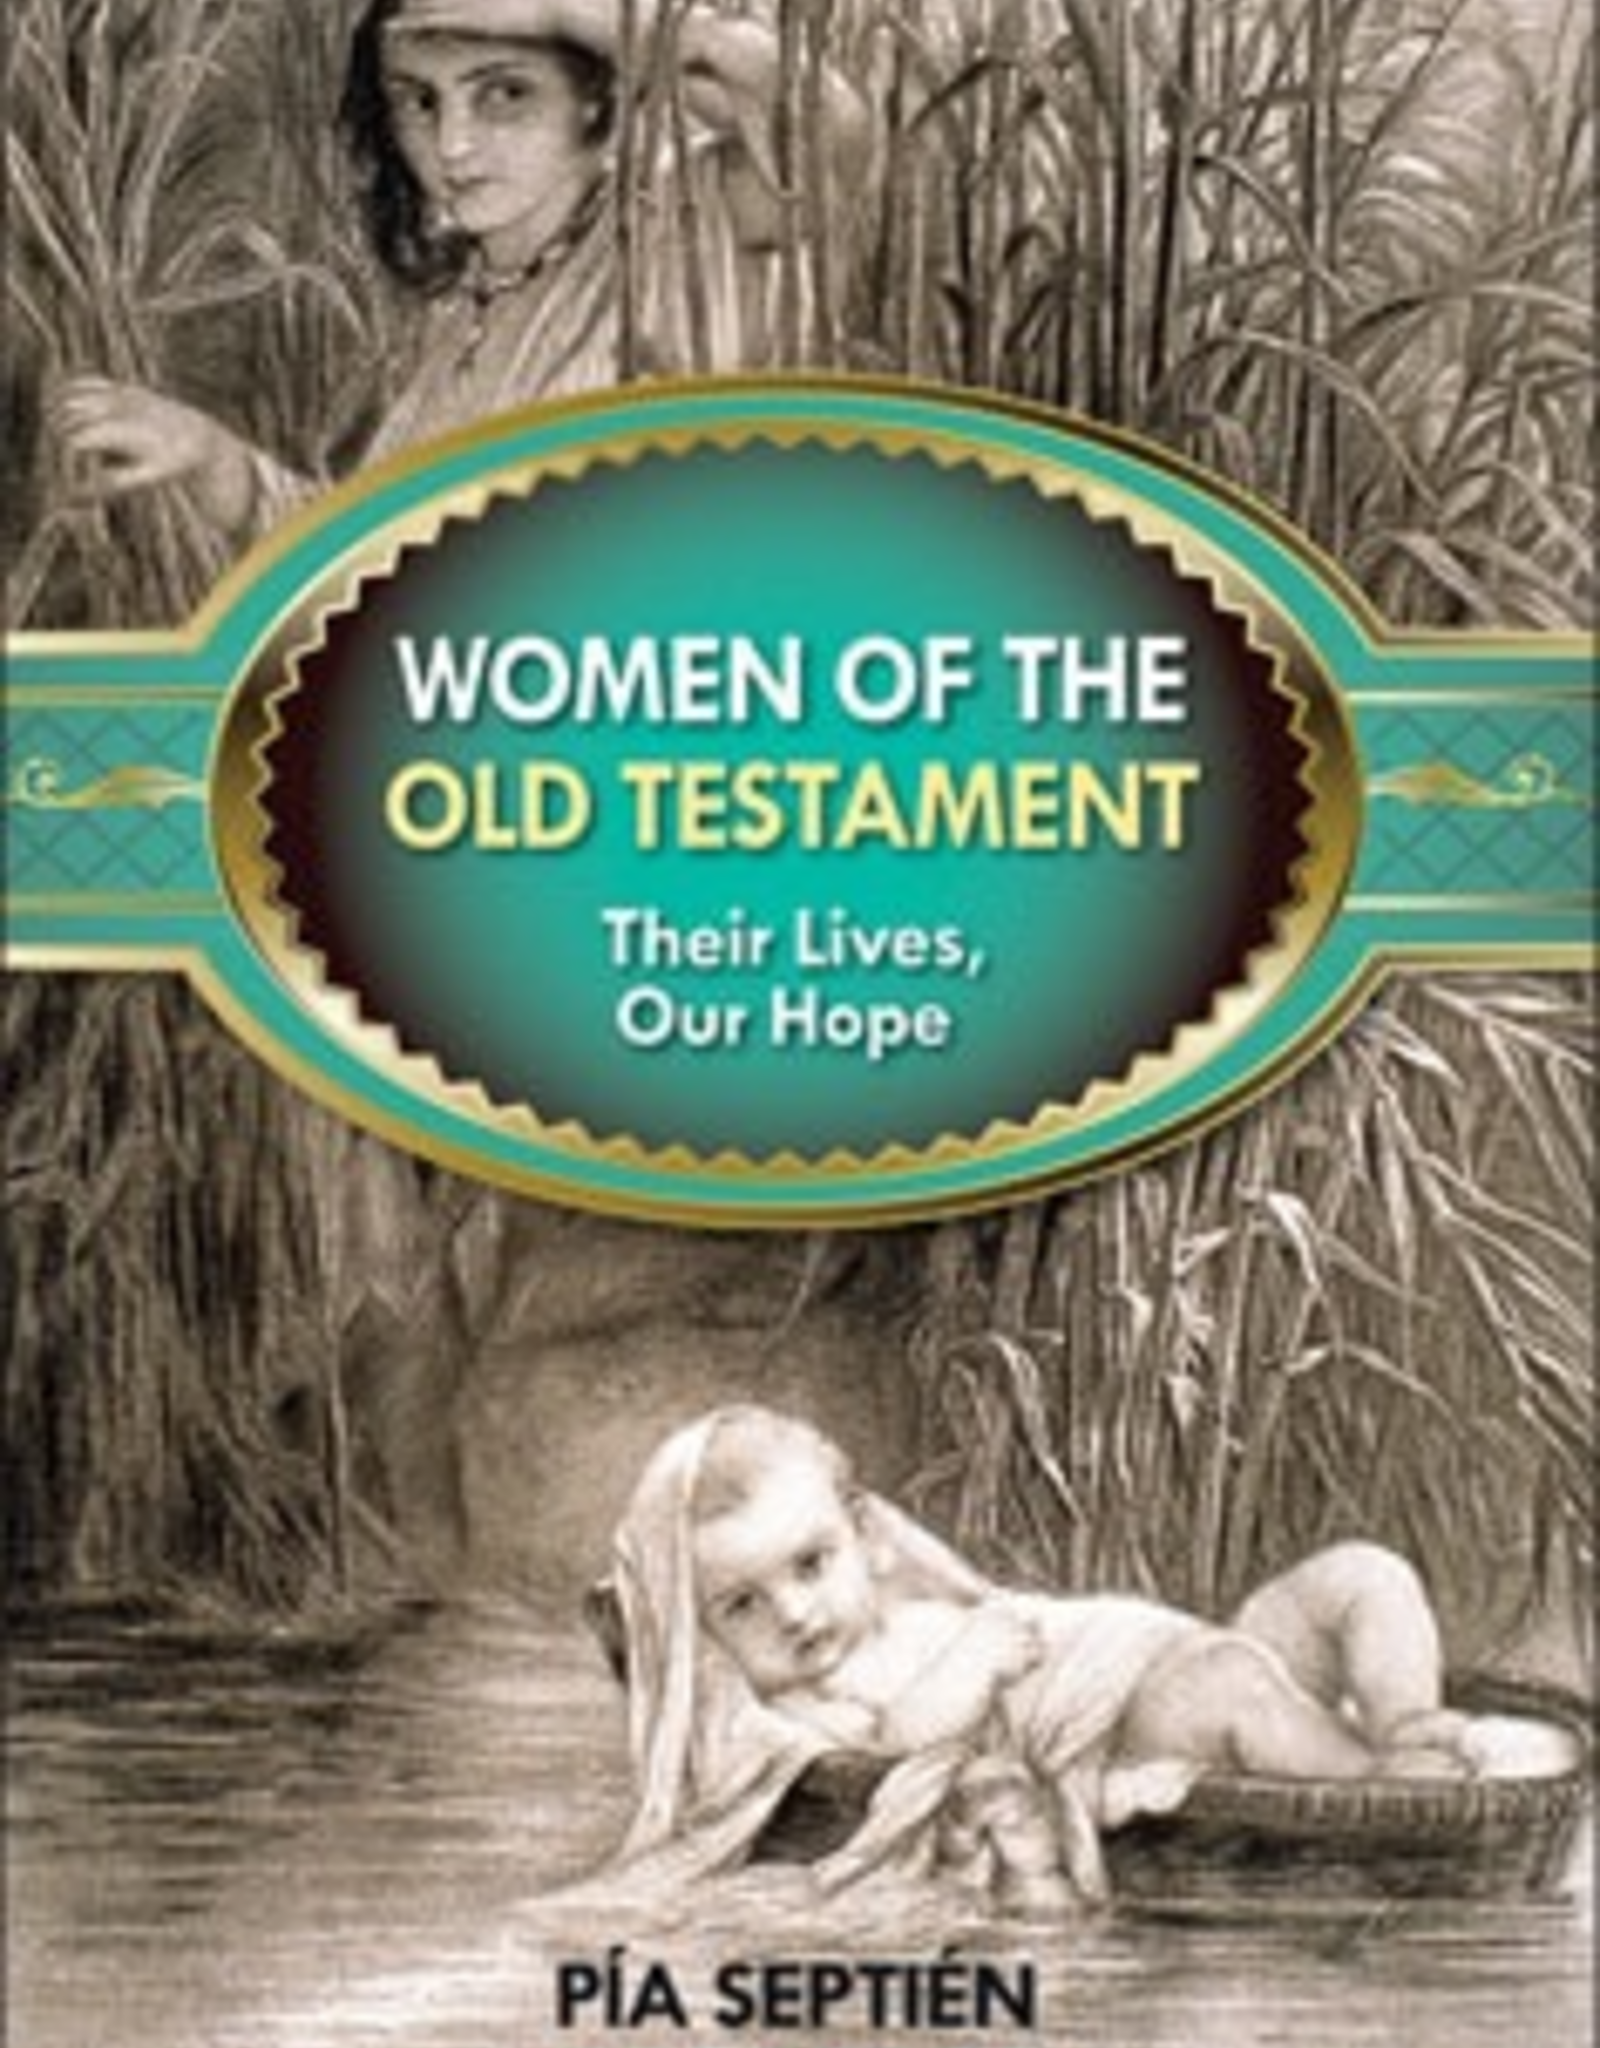 Liguori Women of the Old Testament:  Their Lives, Our Hope, by Pia Septien (paperback)